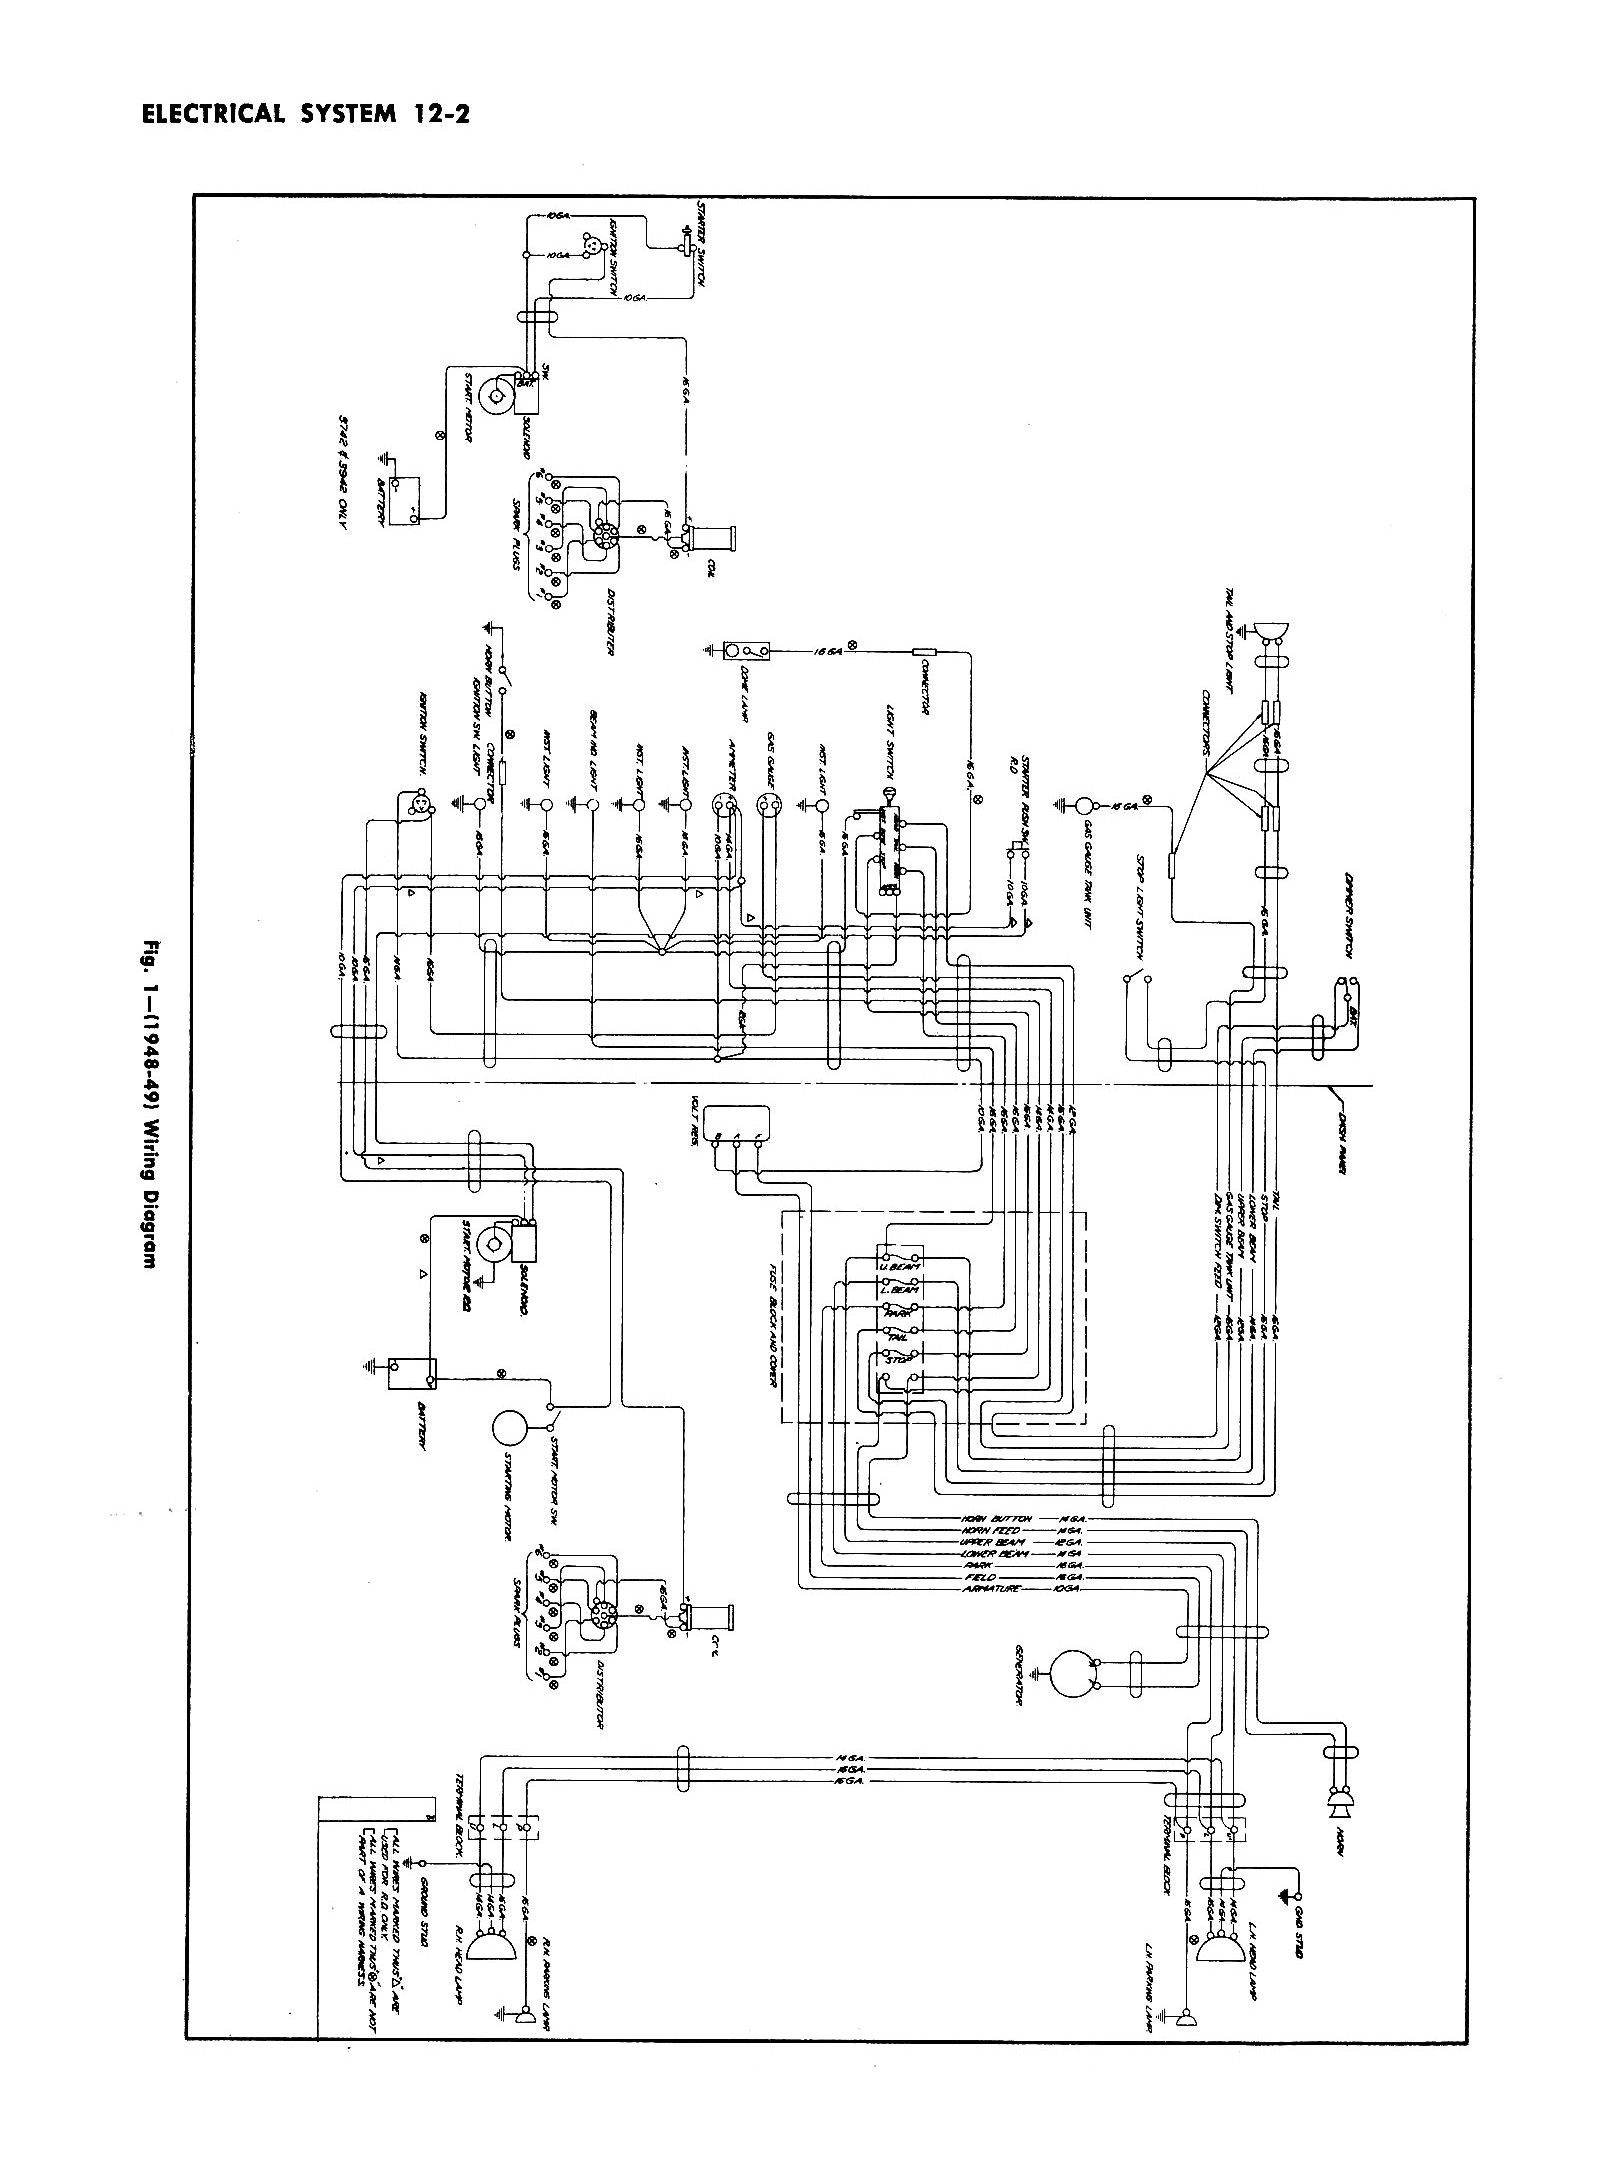 hight resolution of 1954 gm turn signal wiring diagram wiring library rh 31 codingcommunity de gmc sierra wiring schematic